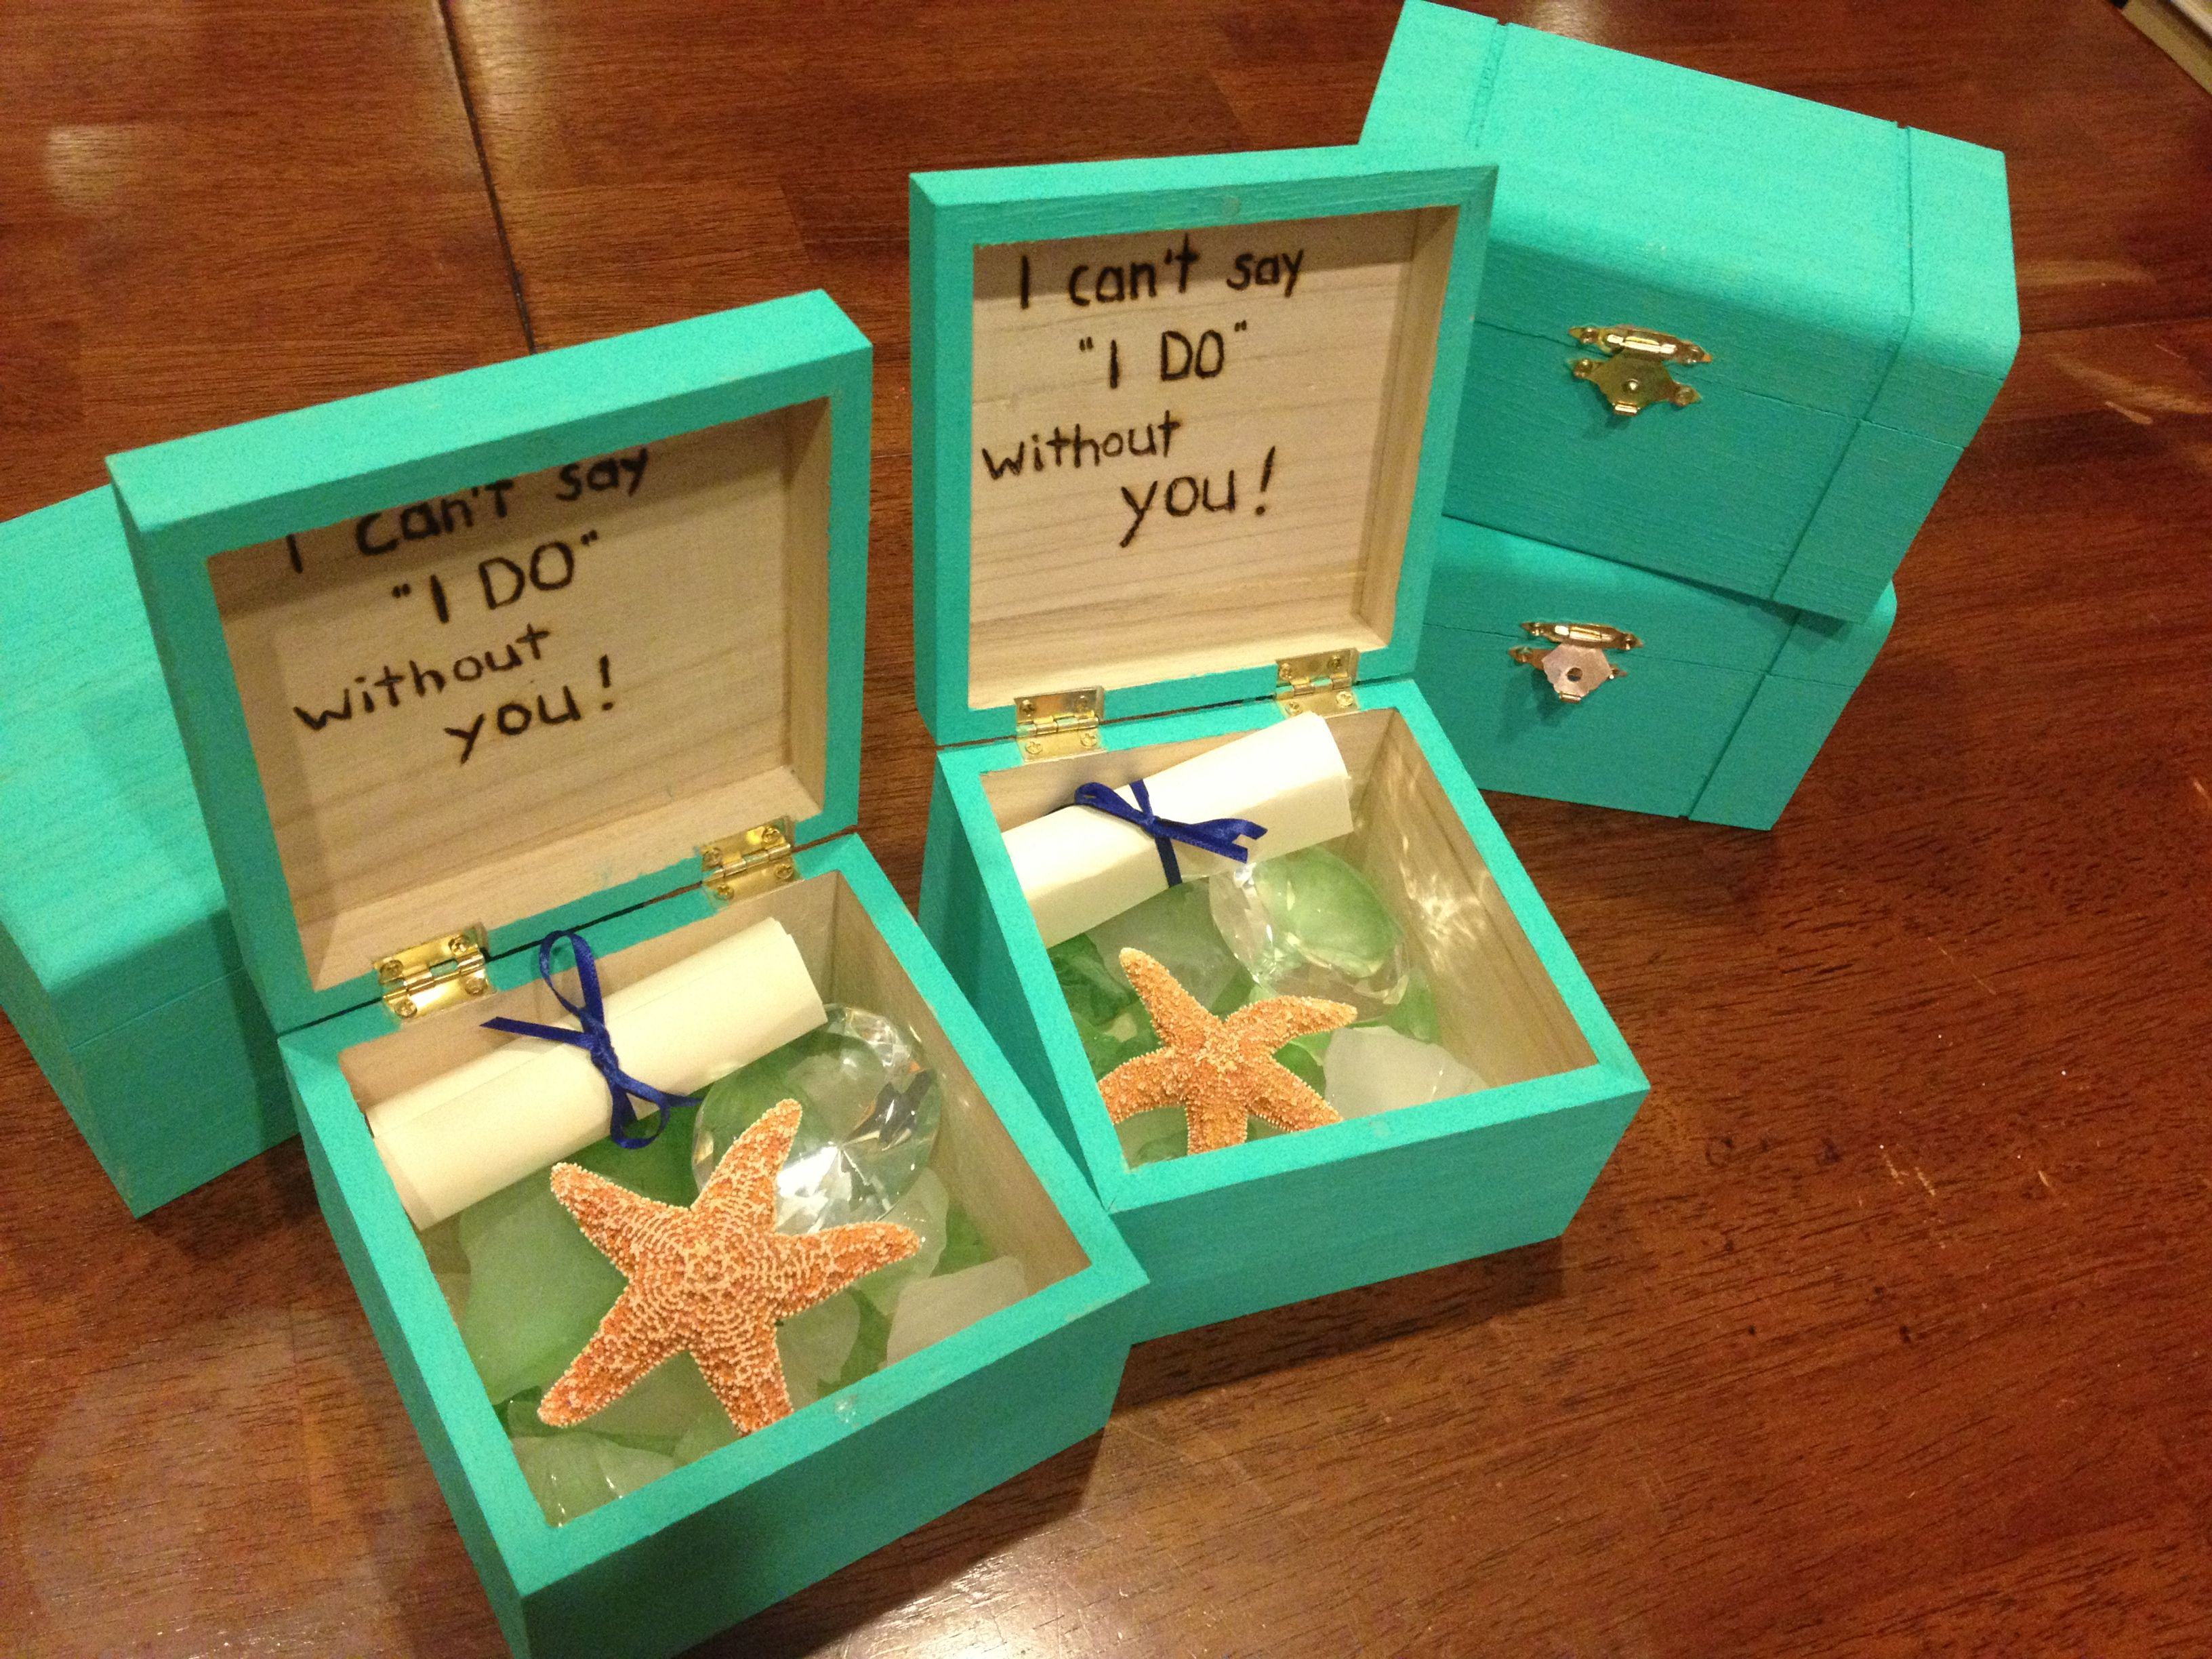 Best Carnival Cruise Wedding Ideas On Pinterest Carnival - Wedding on a cruise ship costs